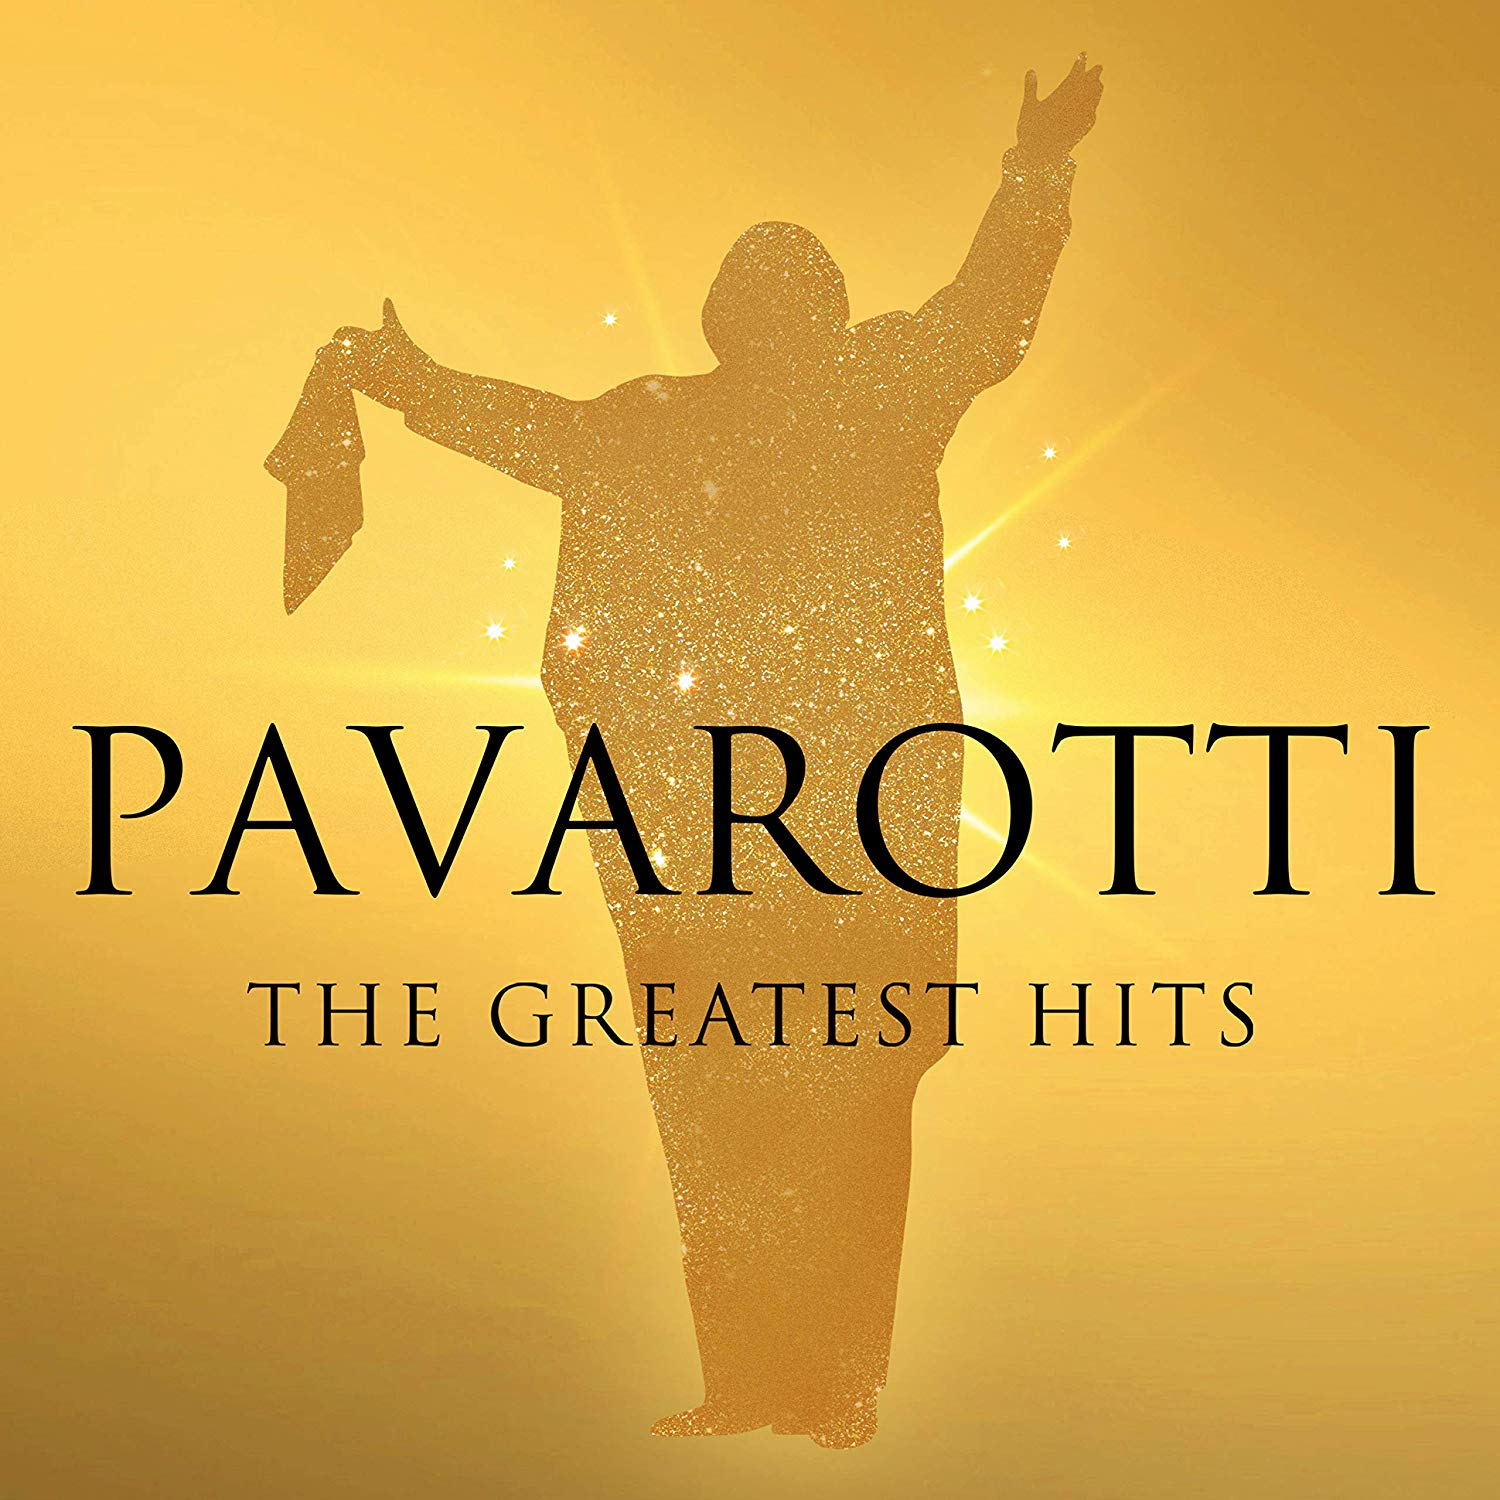 32fa99385 This release coincides with release of Pavarotti:Genius is Forever,  documentary directed by Ron Howard (also directed Beatles Eight Days A Week.